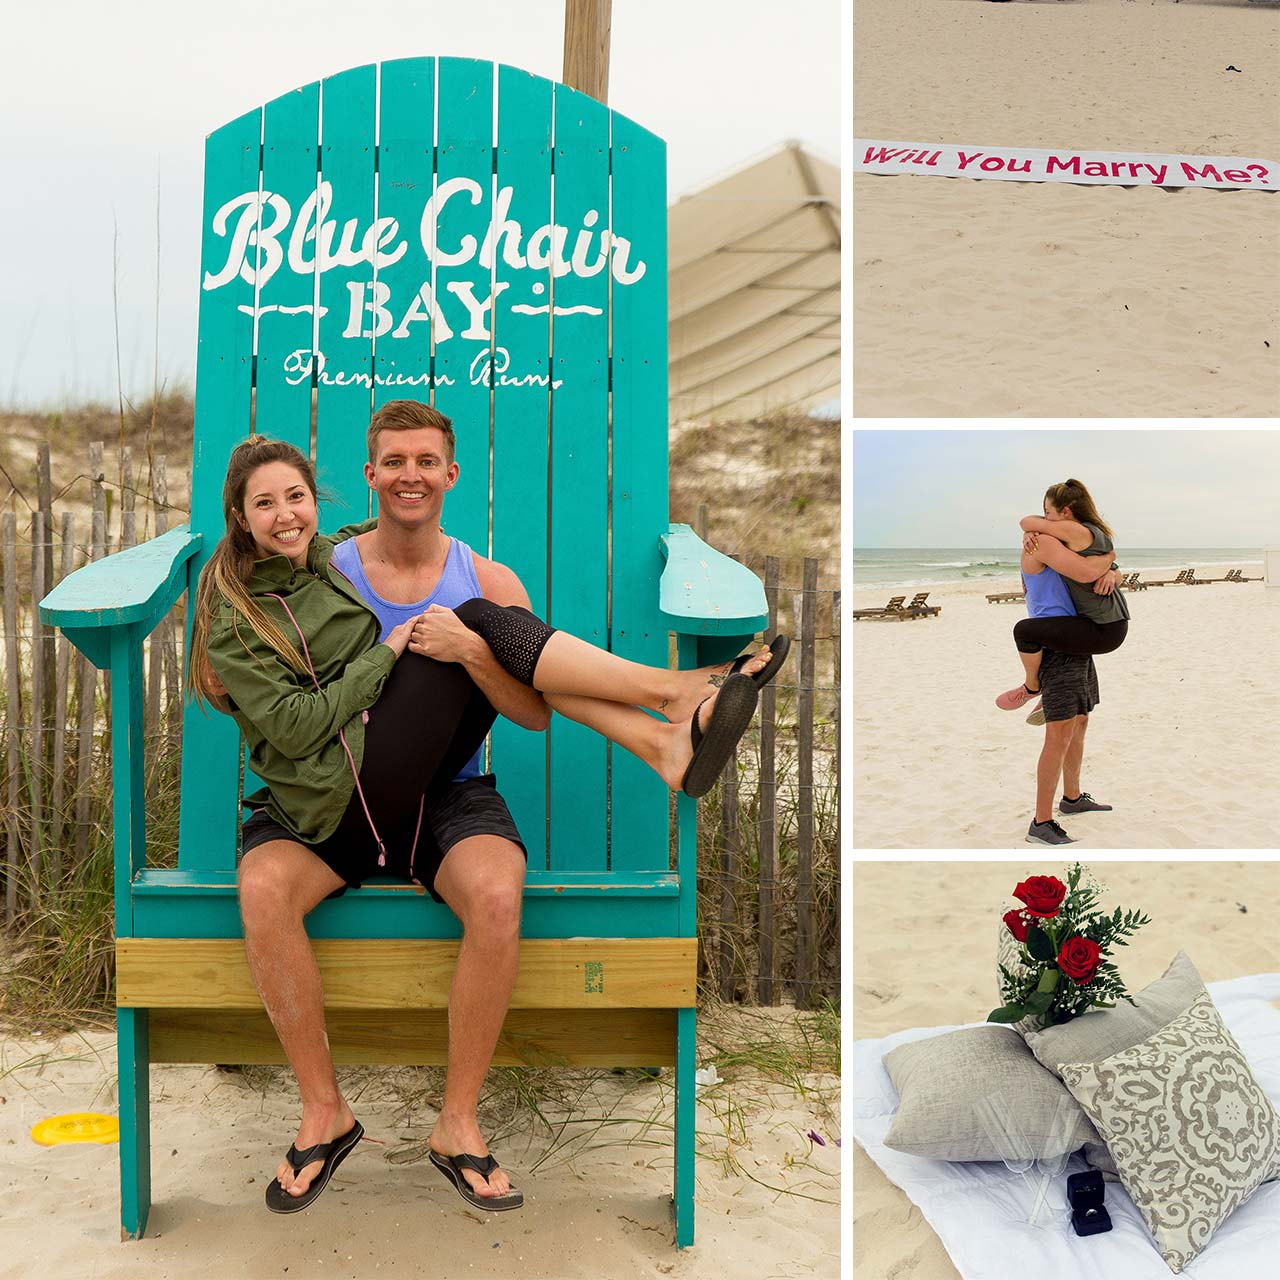 Couple sits in the blue chair bay together after getting engaged at the beach